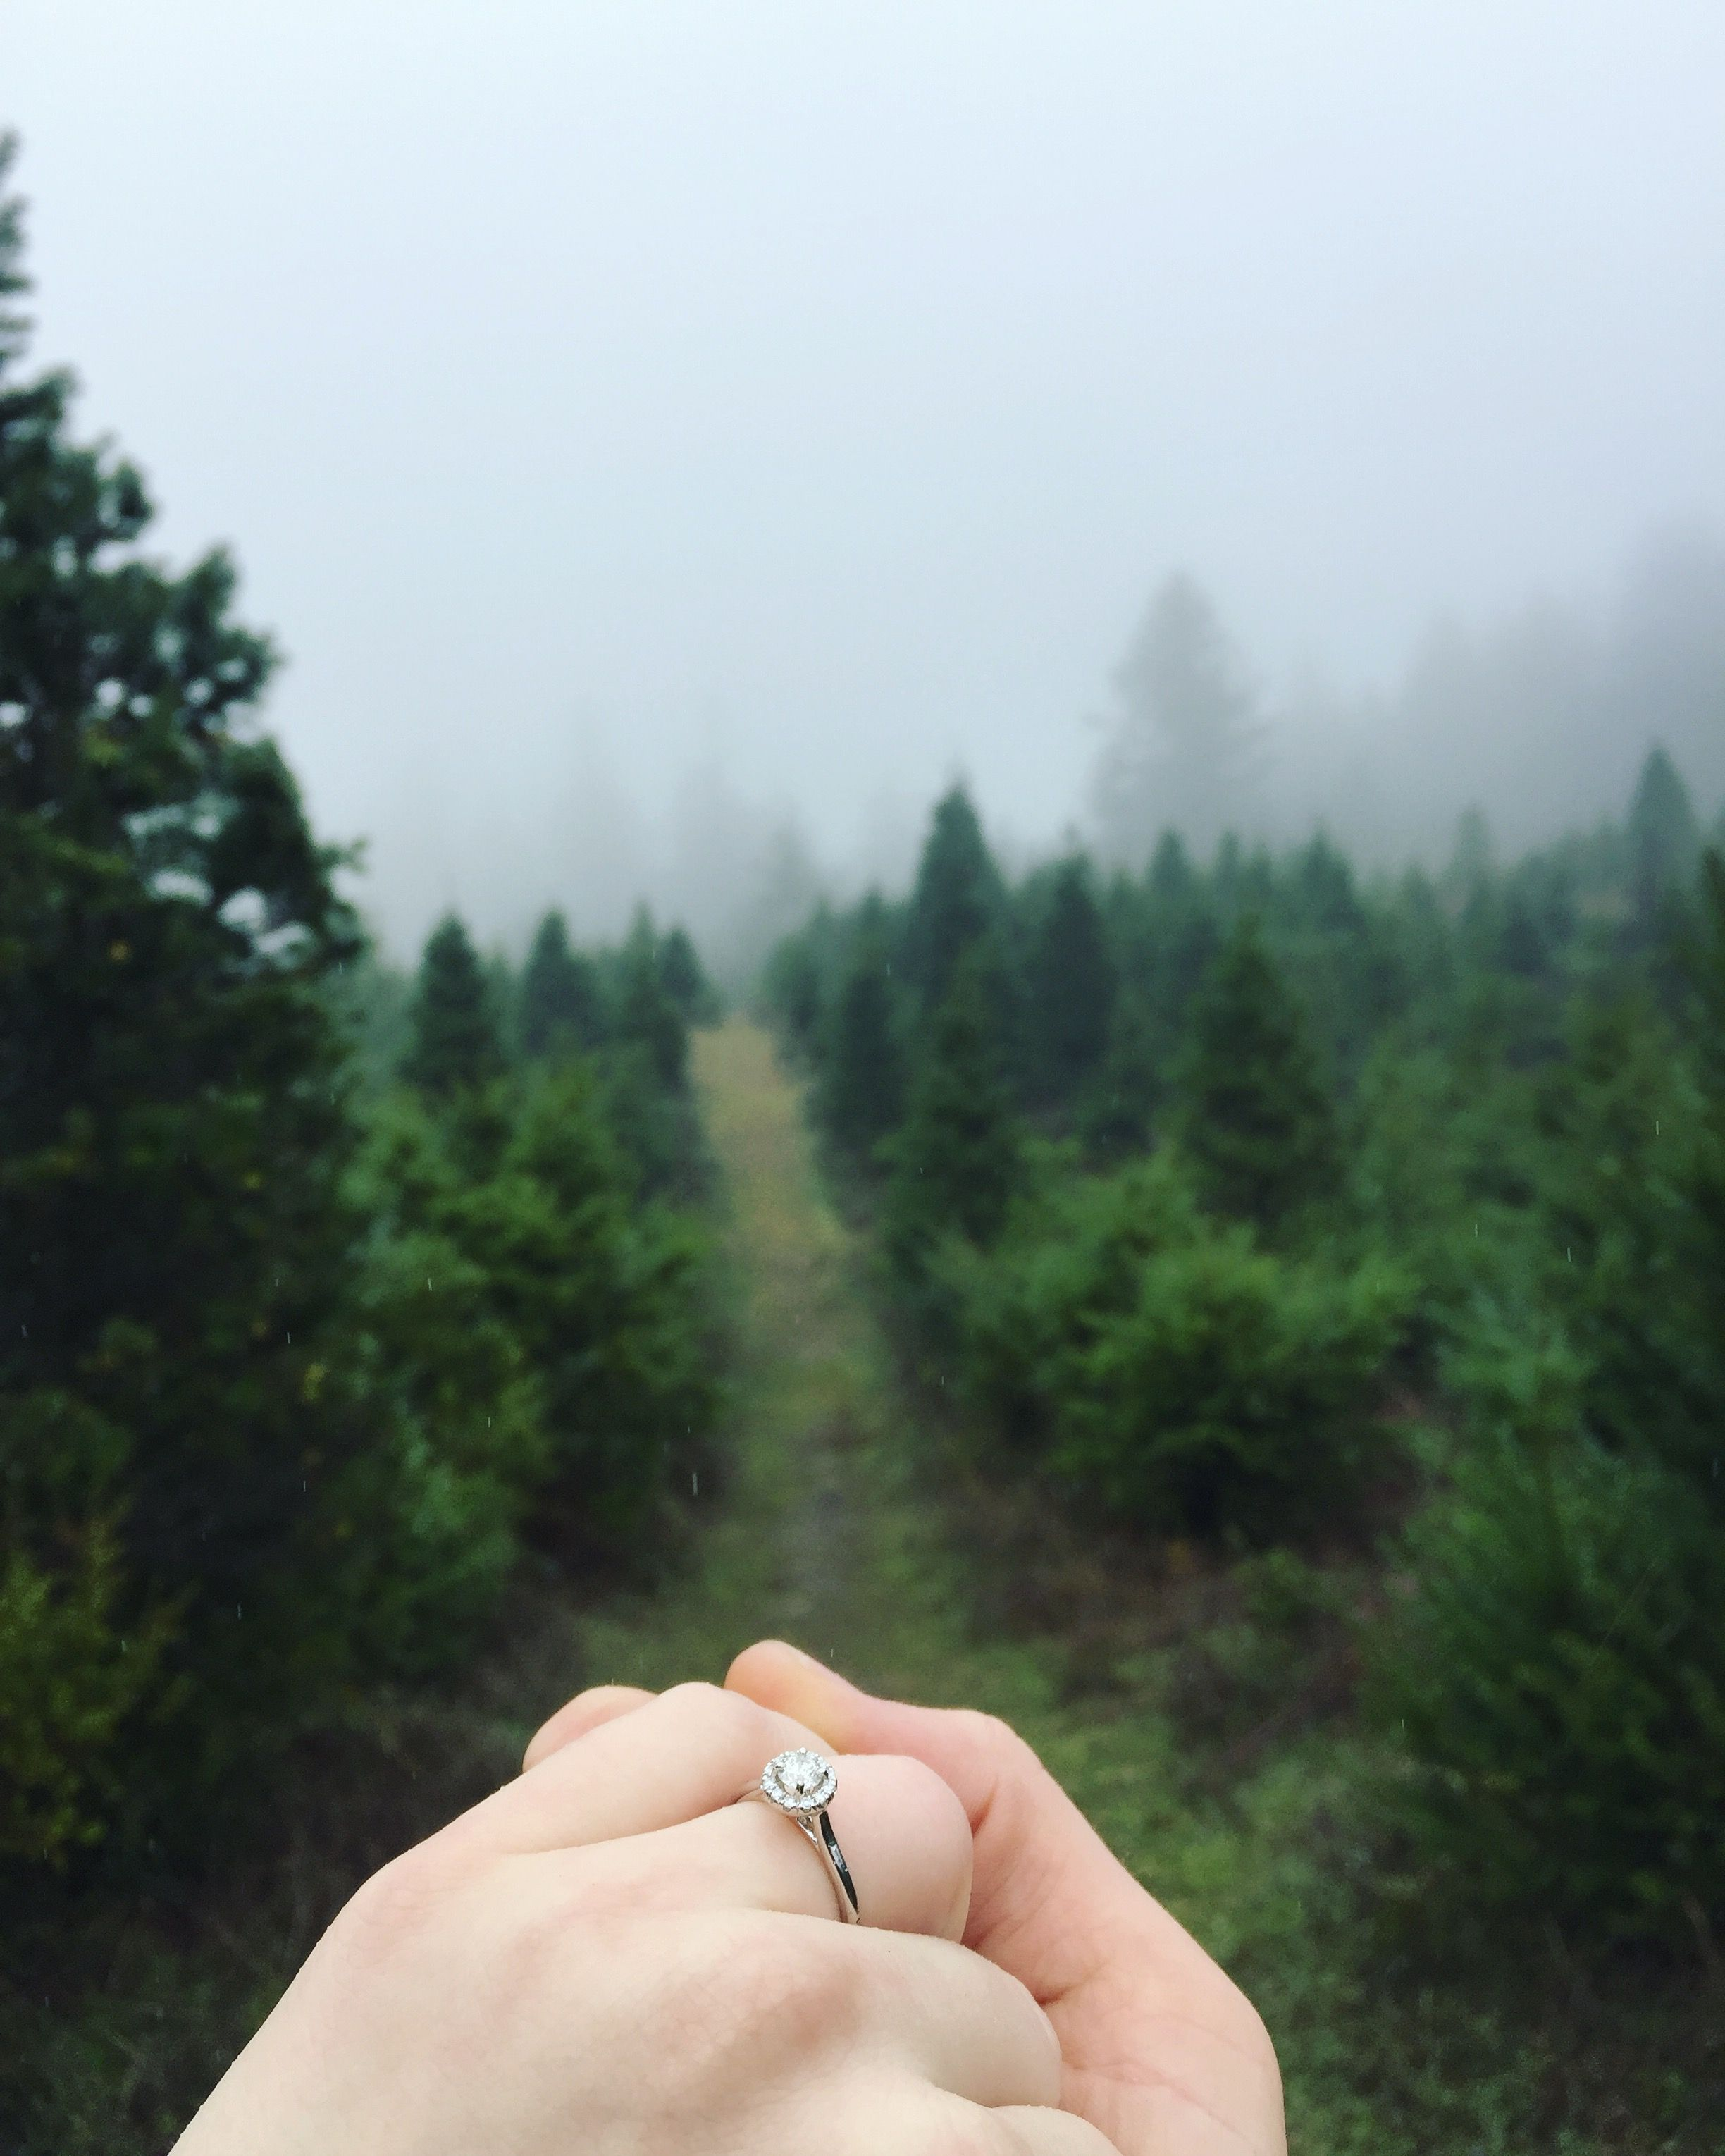 just got engaged to the love of my life in the santa cruz mountains at the most magical christmas tree farm youll ever see absolutely over the moon in